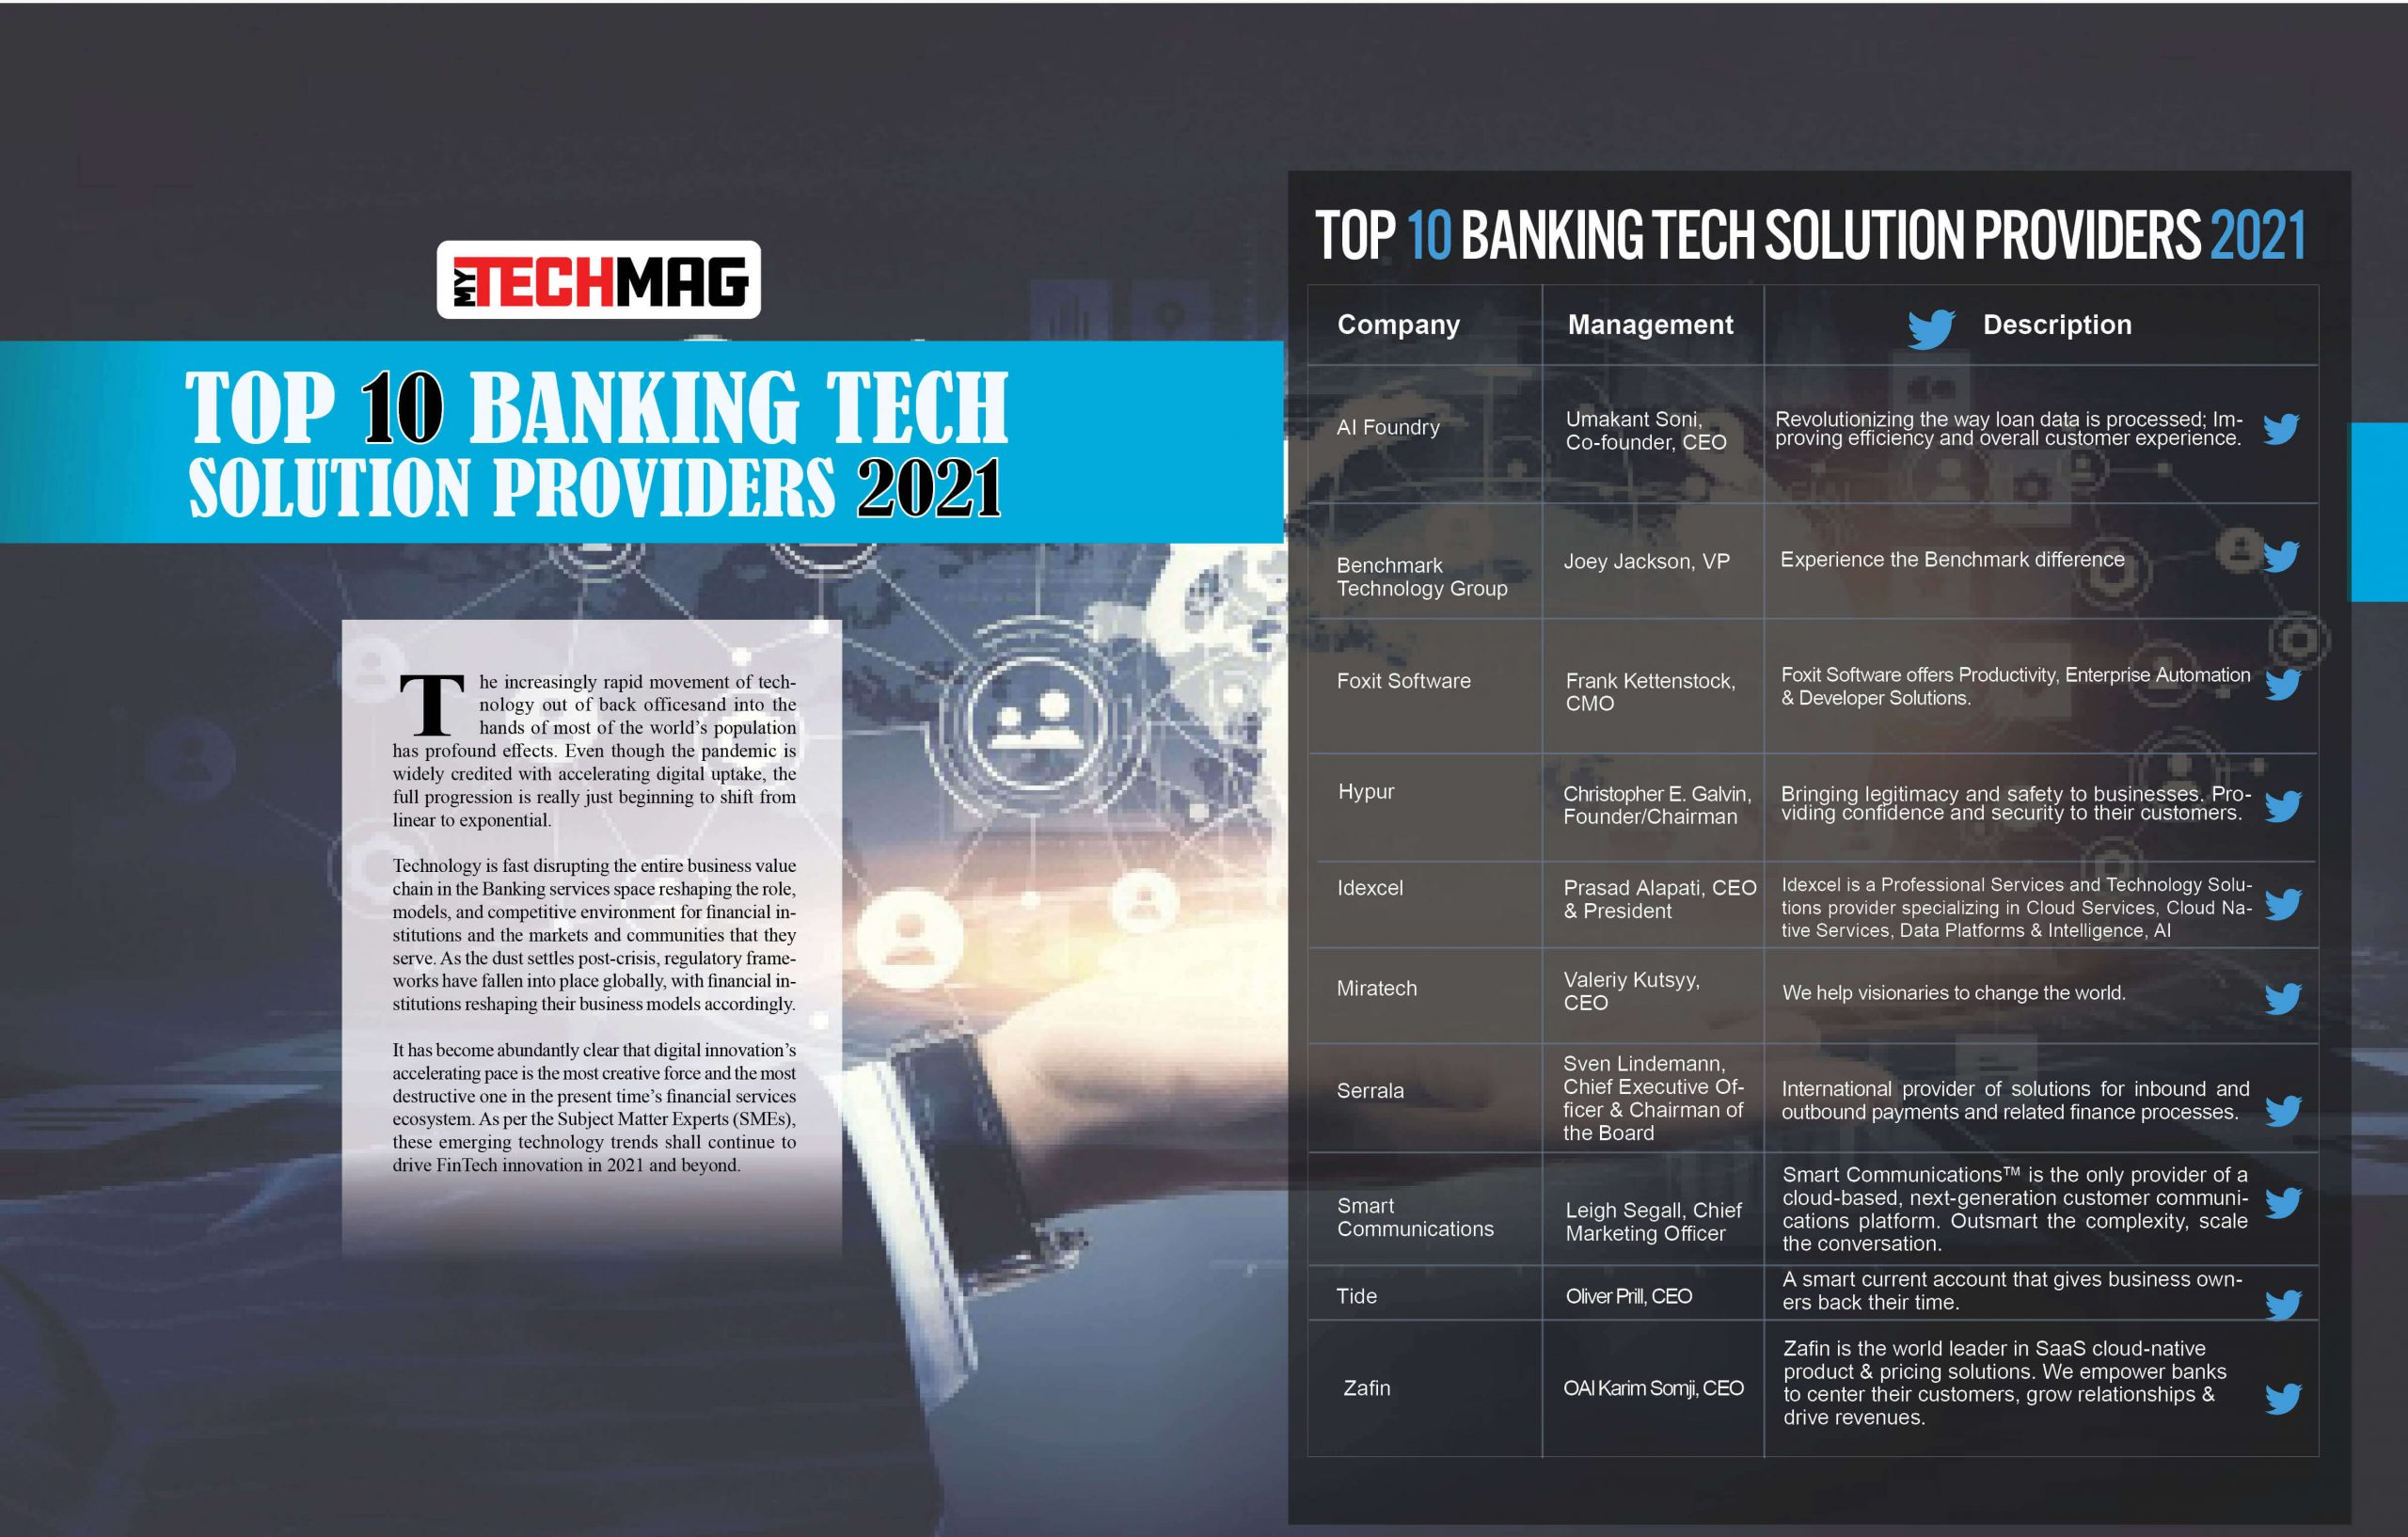 Top 10 Banking Tech Solution Providers 2021